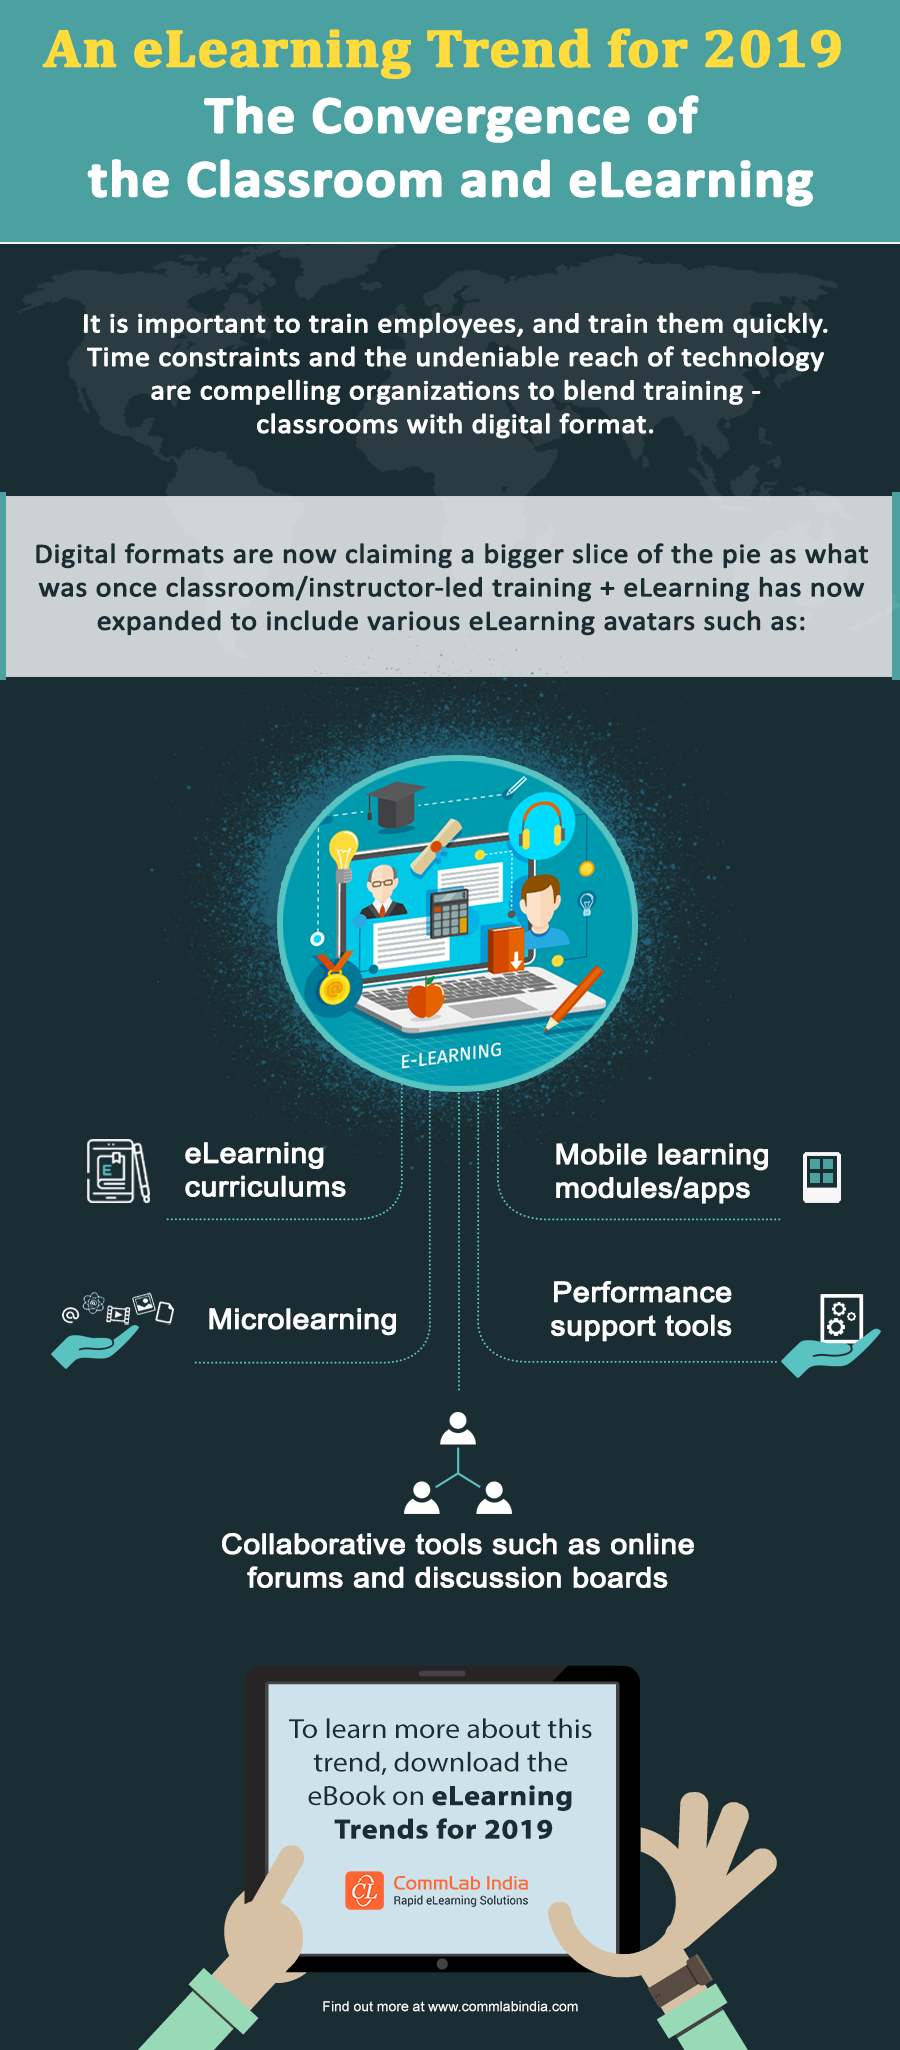 An eLearning Trend for 2019: The Convergence of the Classroom and eLearning [Infographic]